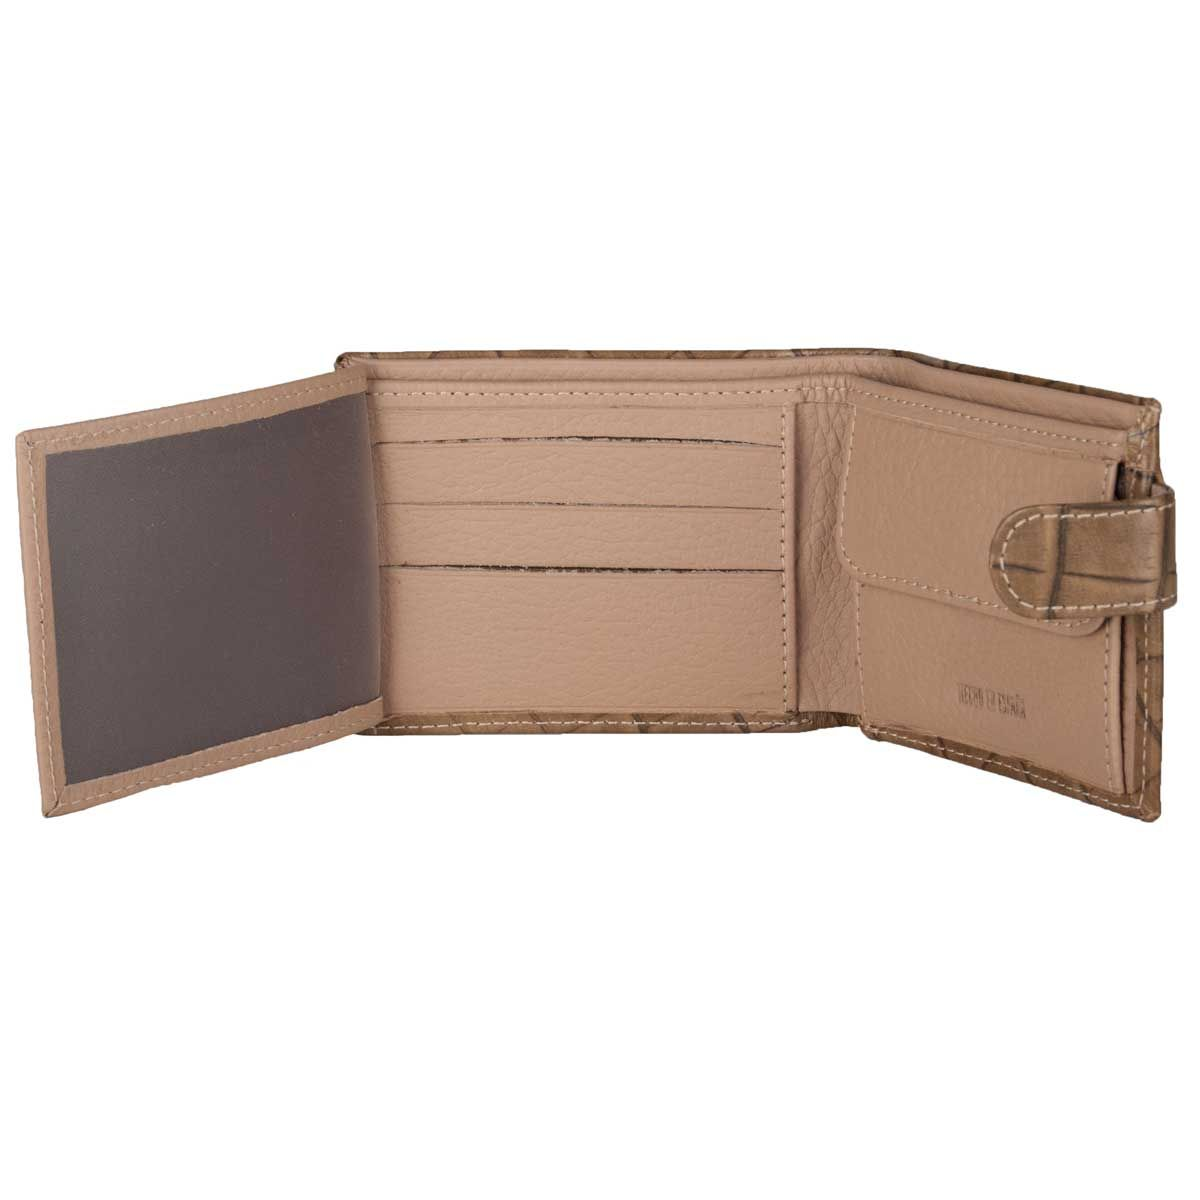 Montevita Leather Wallet in Taupe